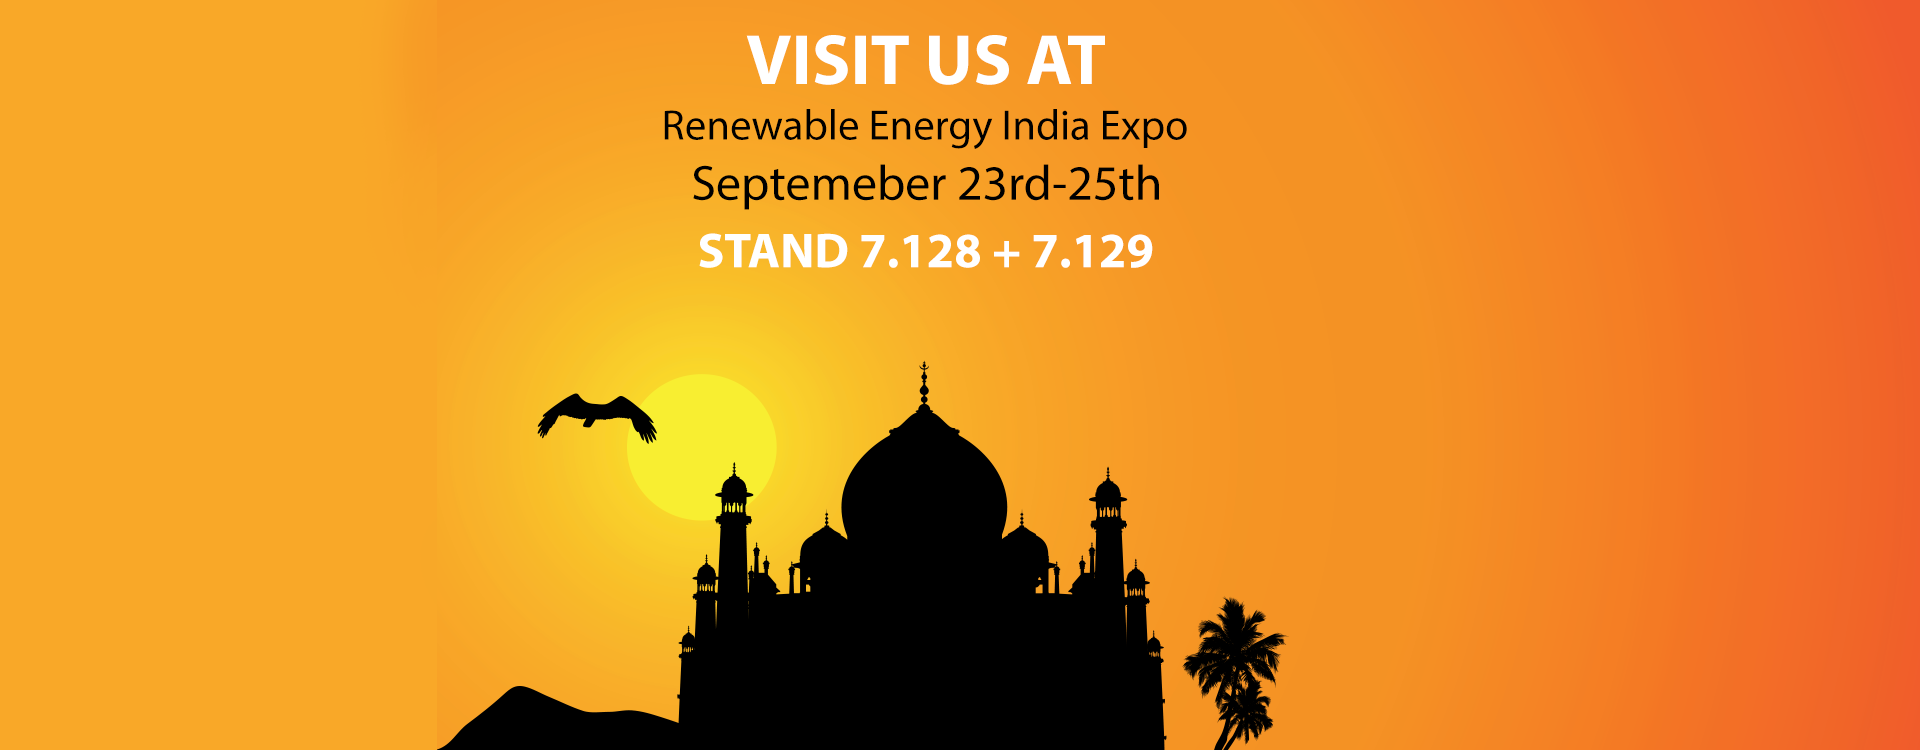 Visit Us At The Renewable Energy India Expo